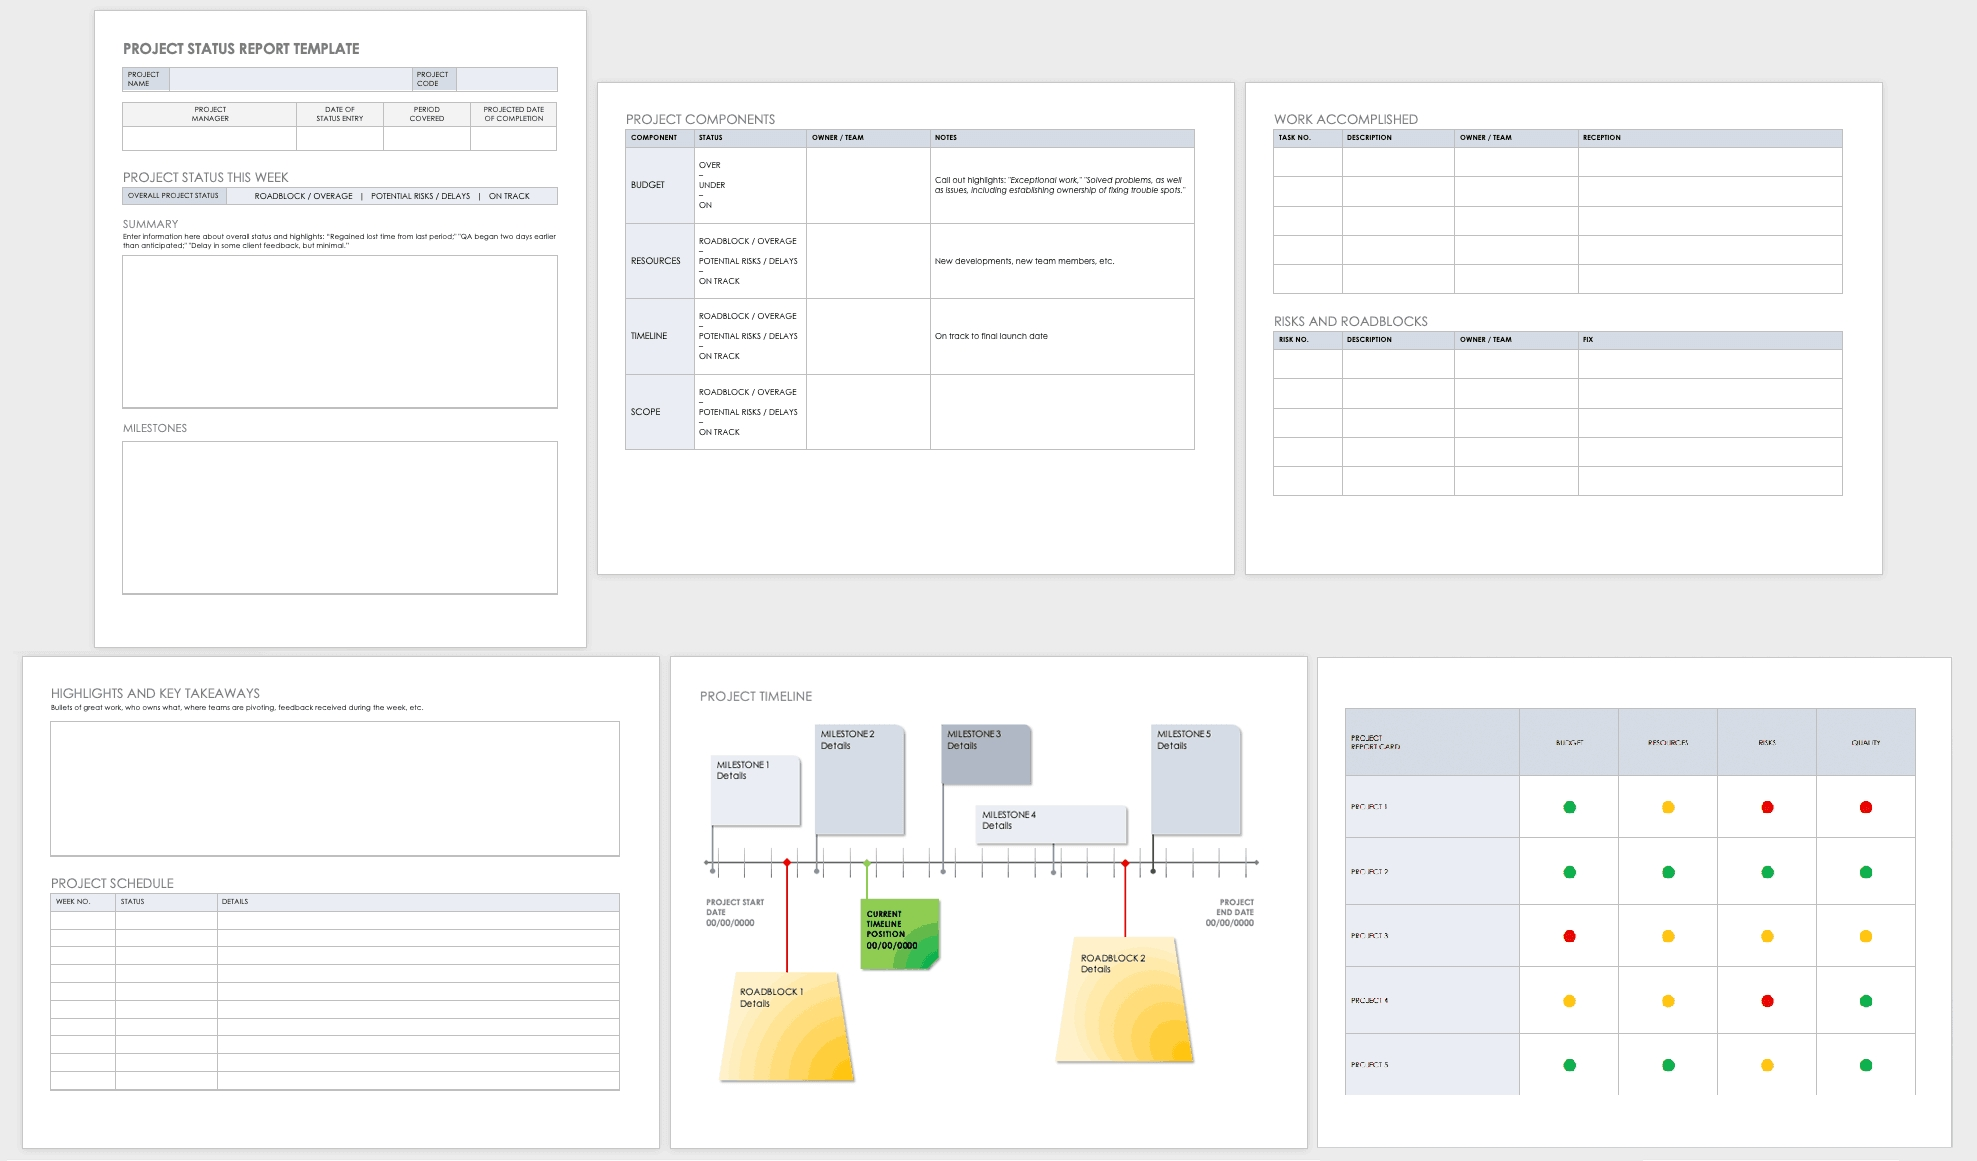 free project report templates | smartsheet